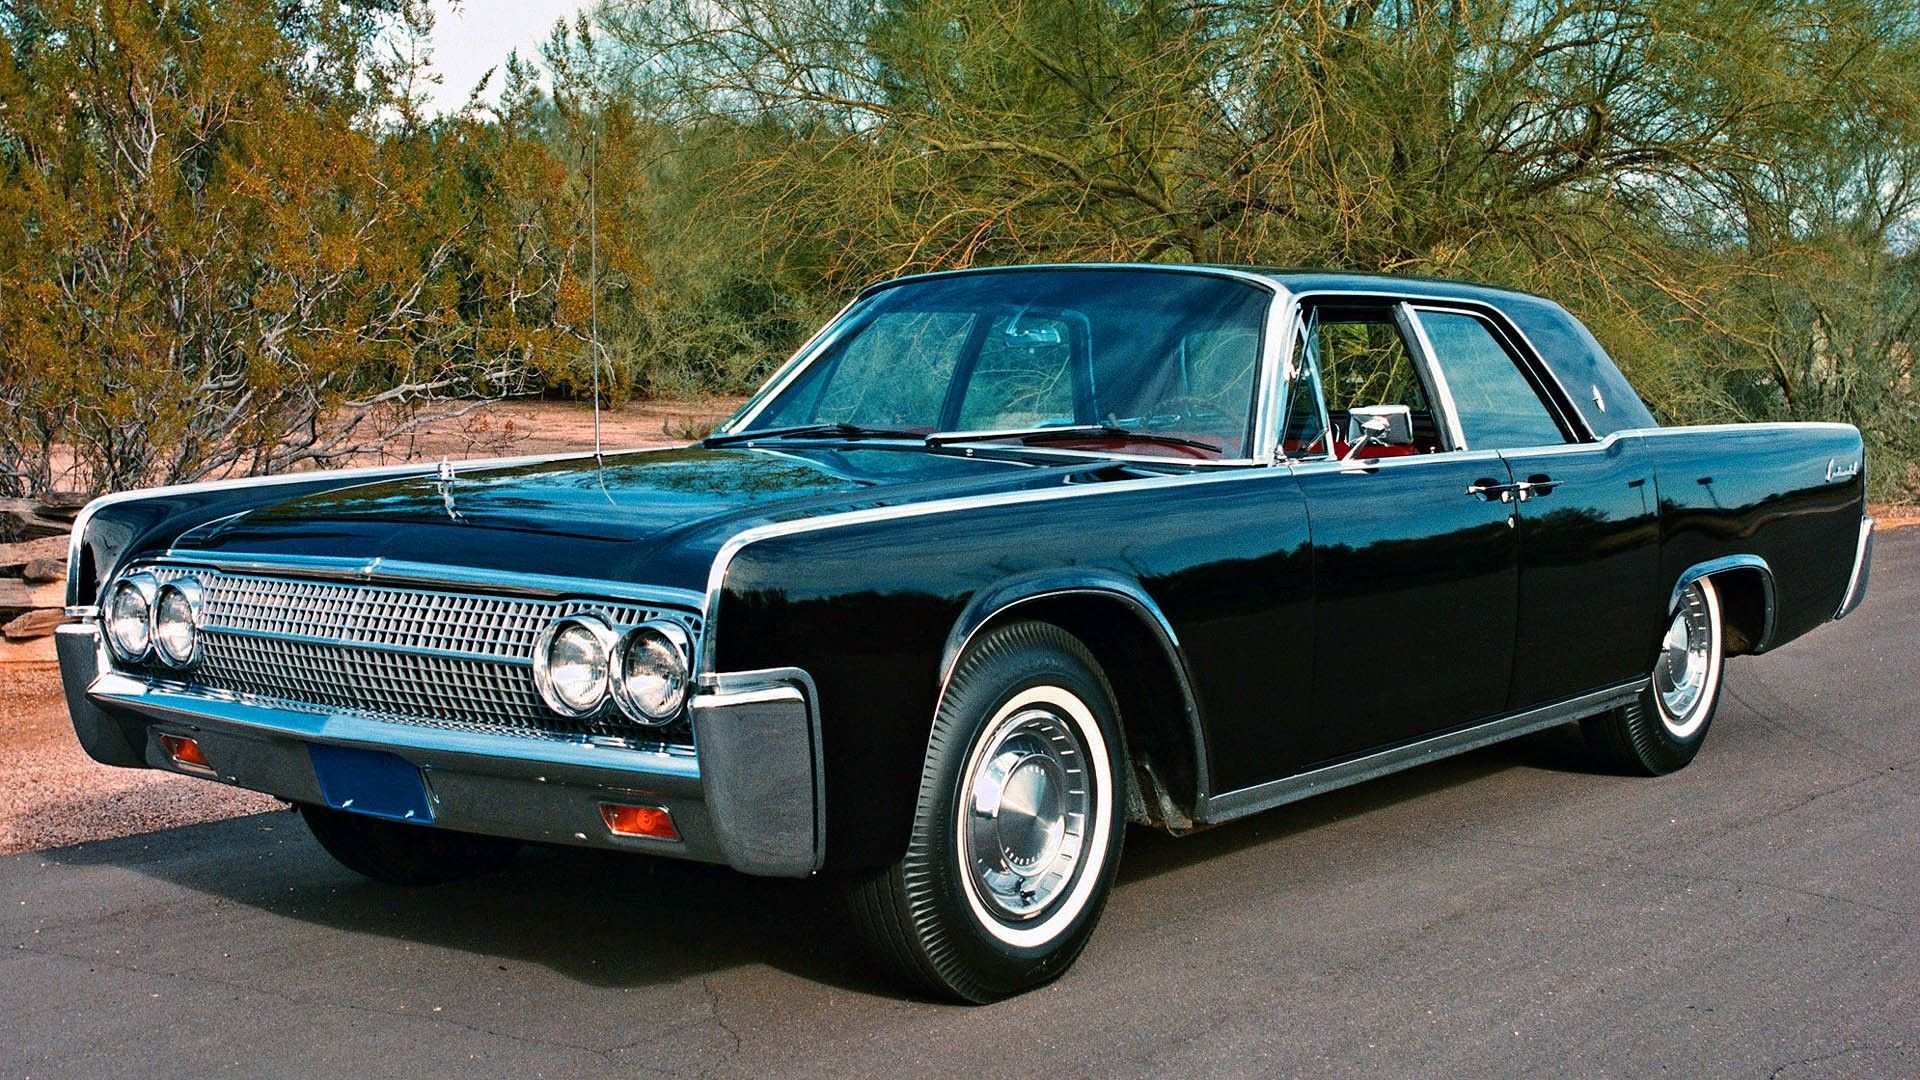 old lincoln cars cars lincoln classic cars car wallpapers bikes cars pinterest. Black Bedroom Furniture Sets. Home Design Ideas